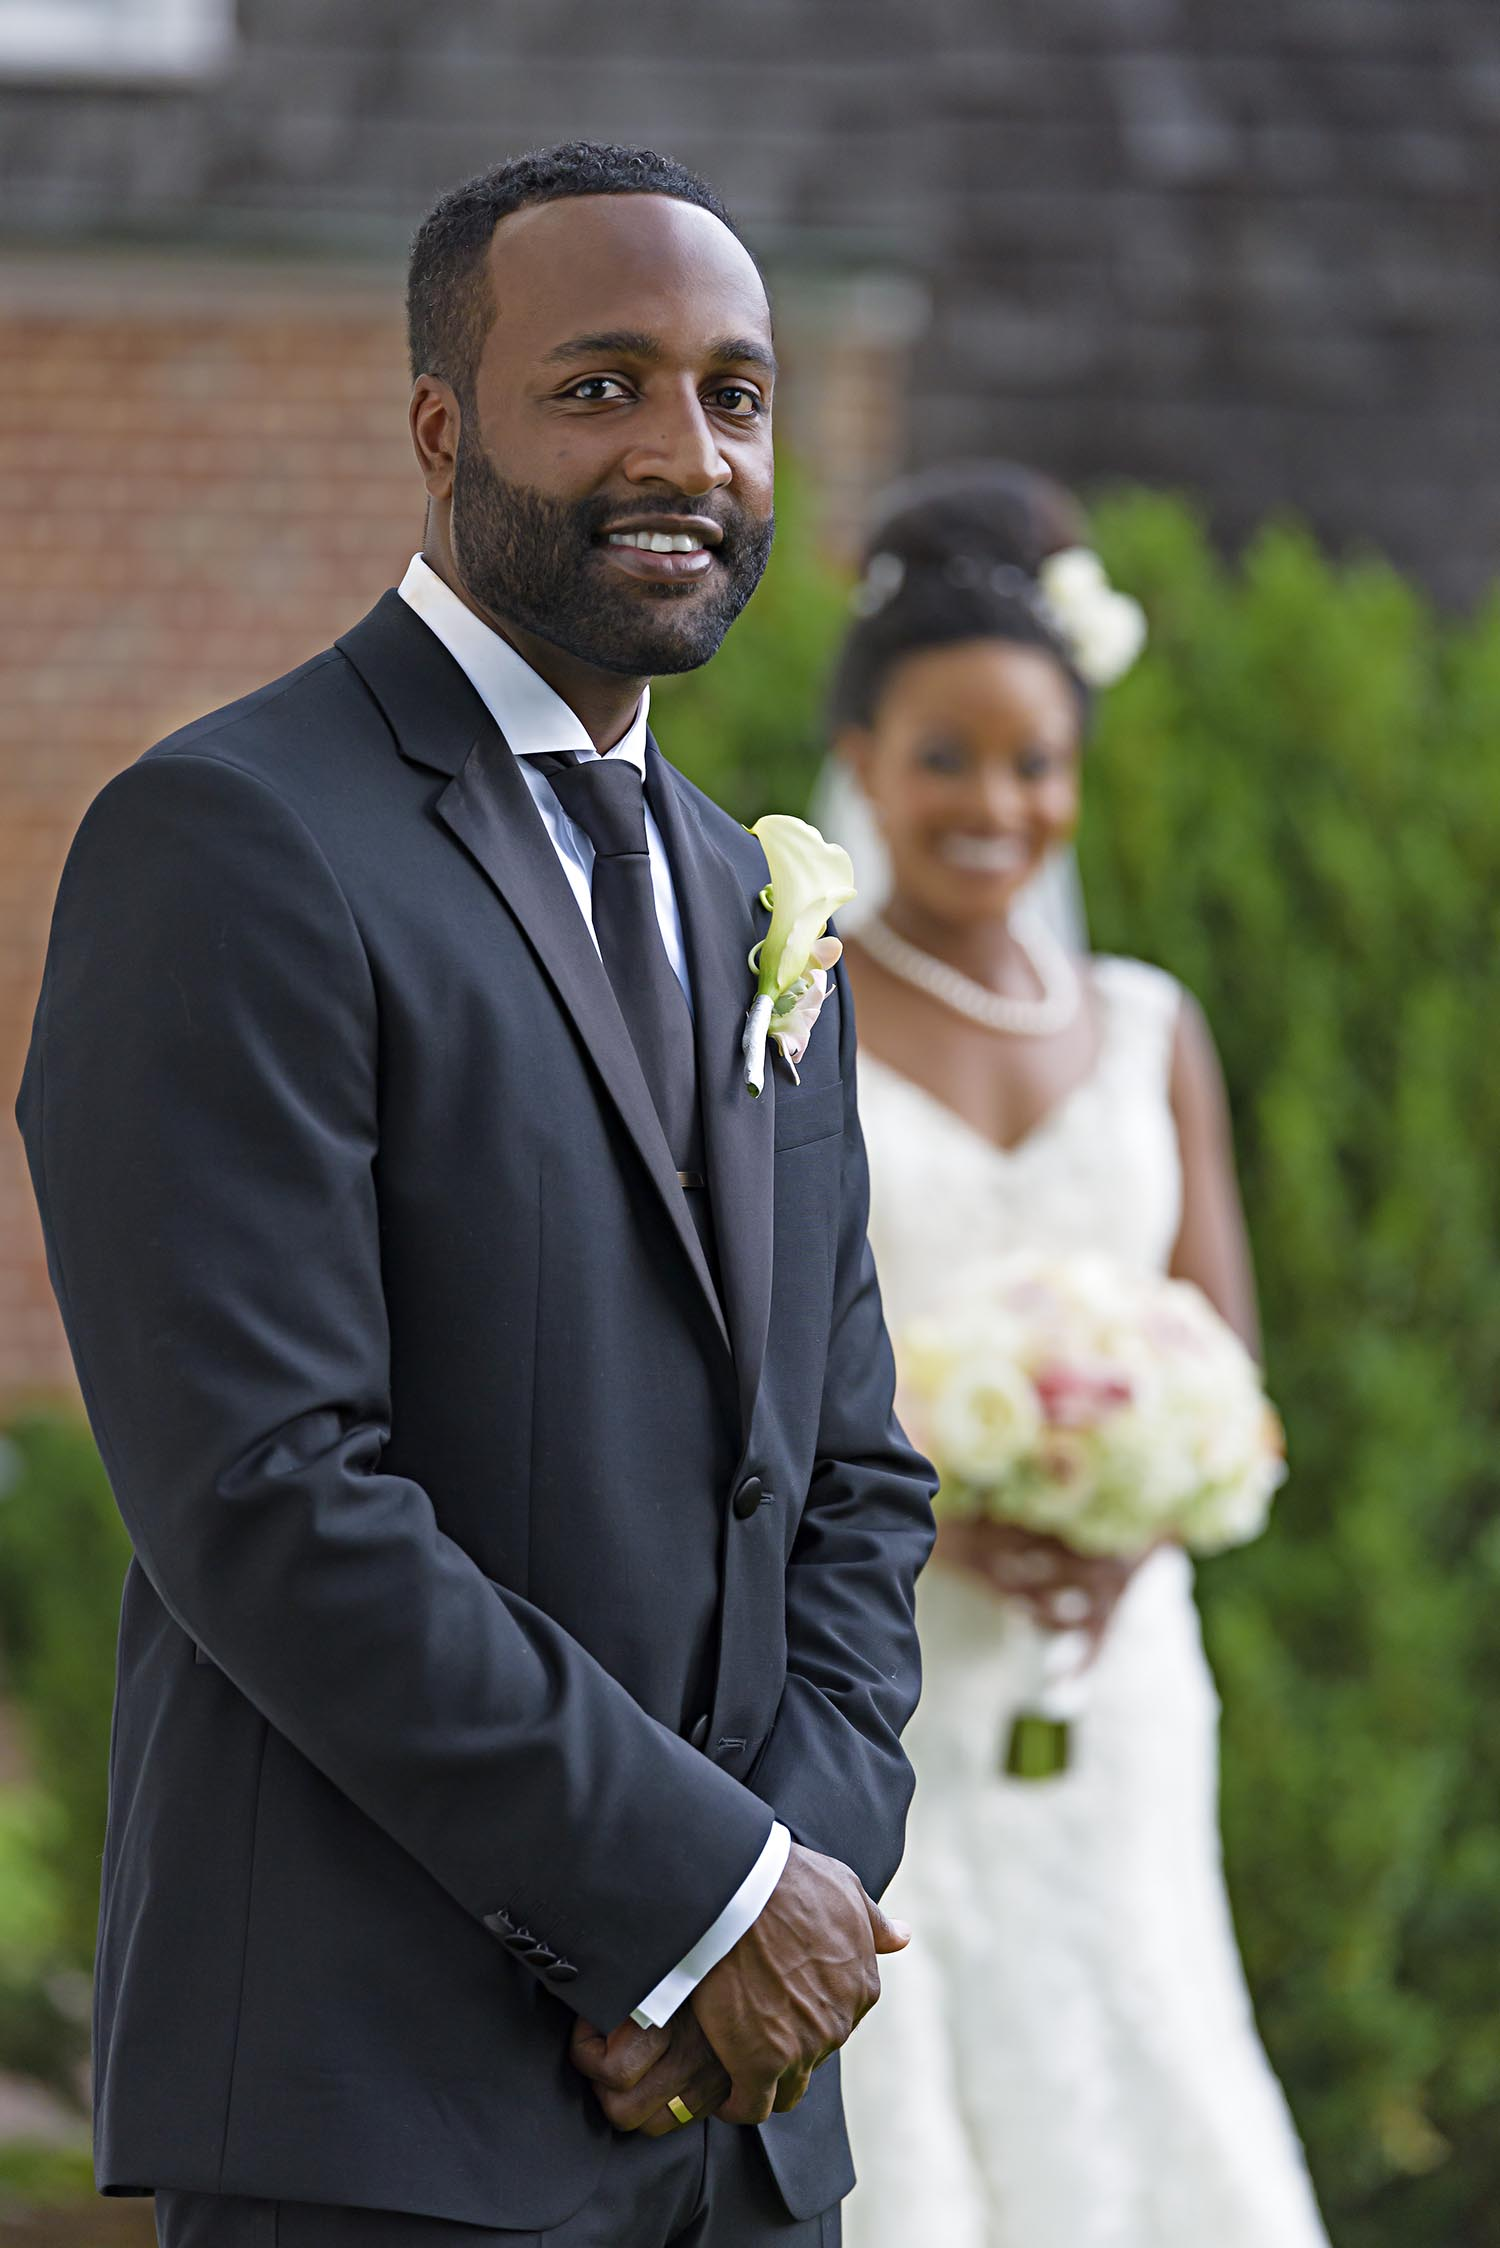 Baltimore Photo and Video Weddings